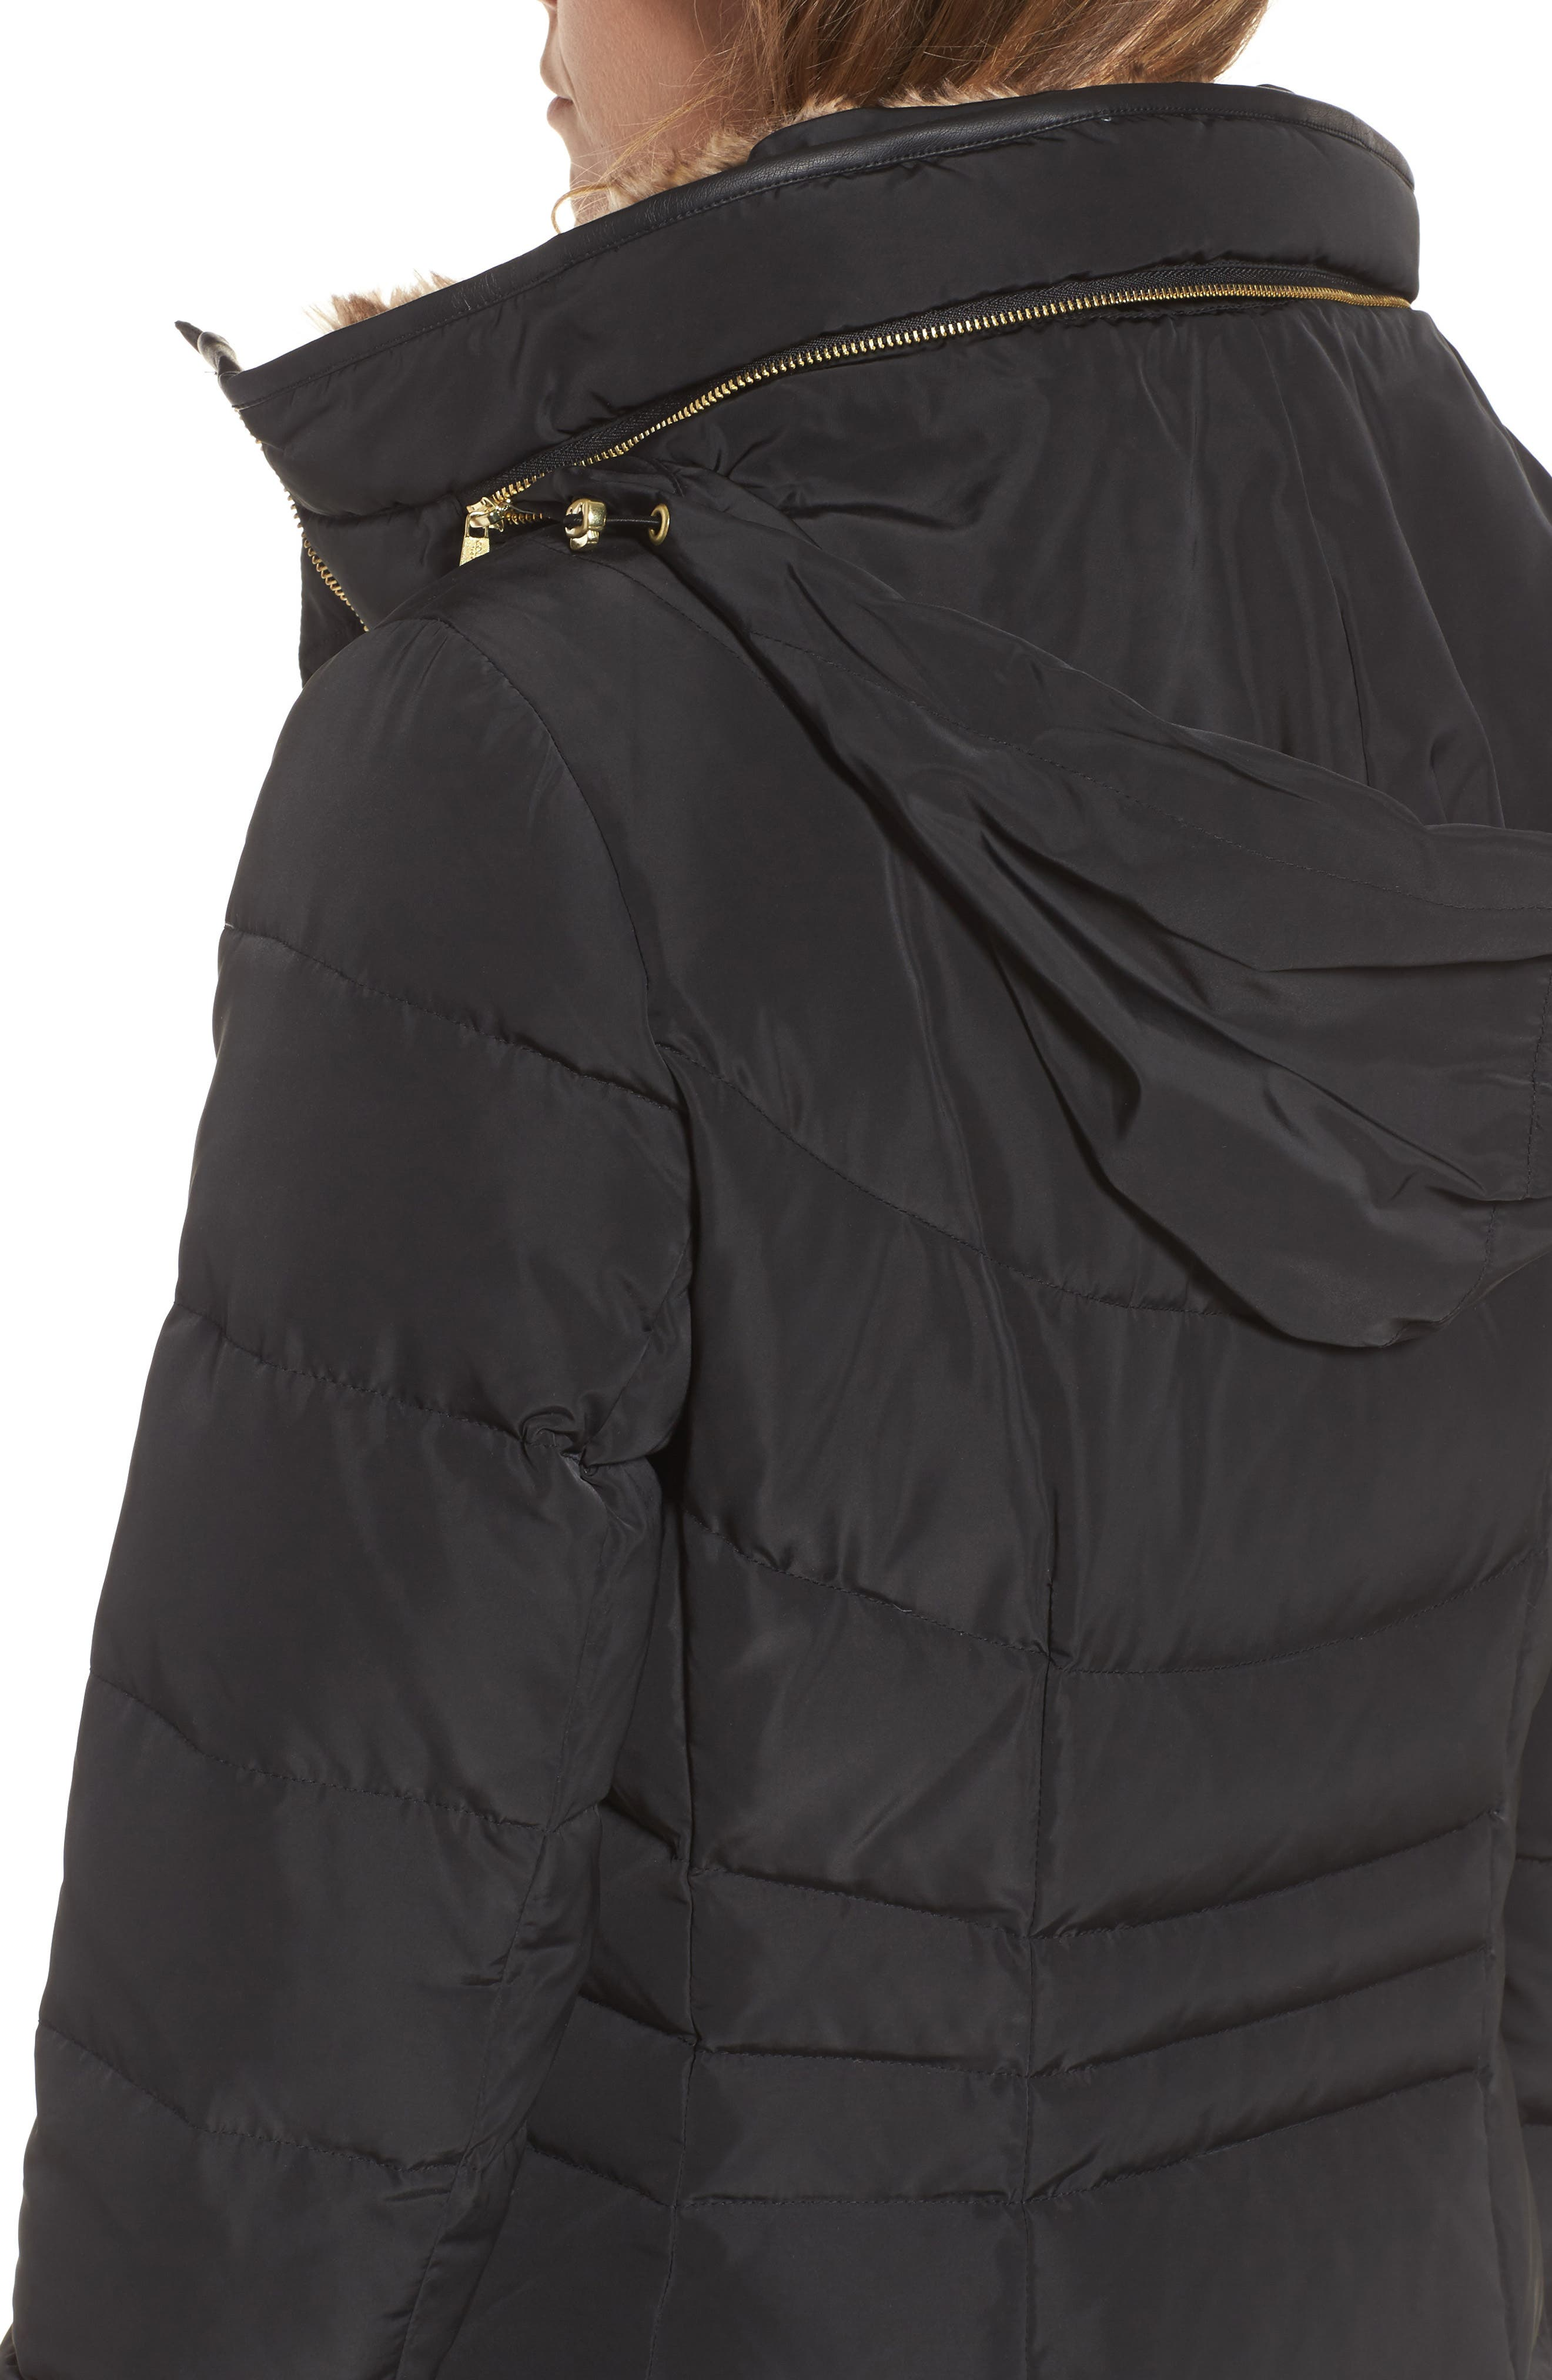 Alternate Image 4  - Cole Haan Quilted Down & Feather Fill Jacket with Faux Fur Trim